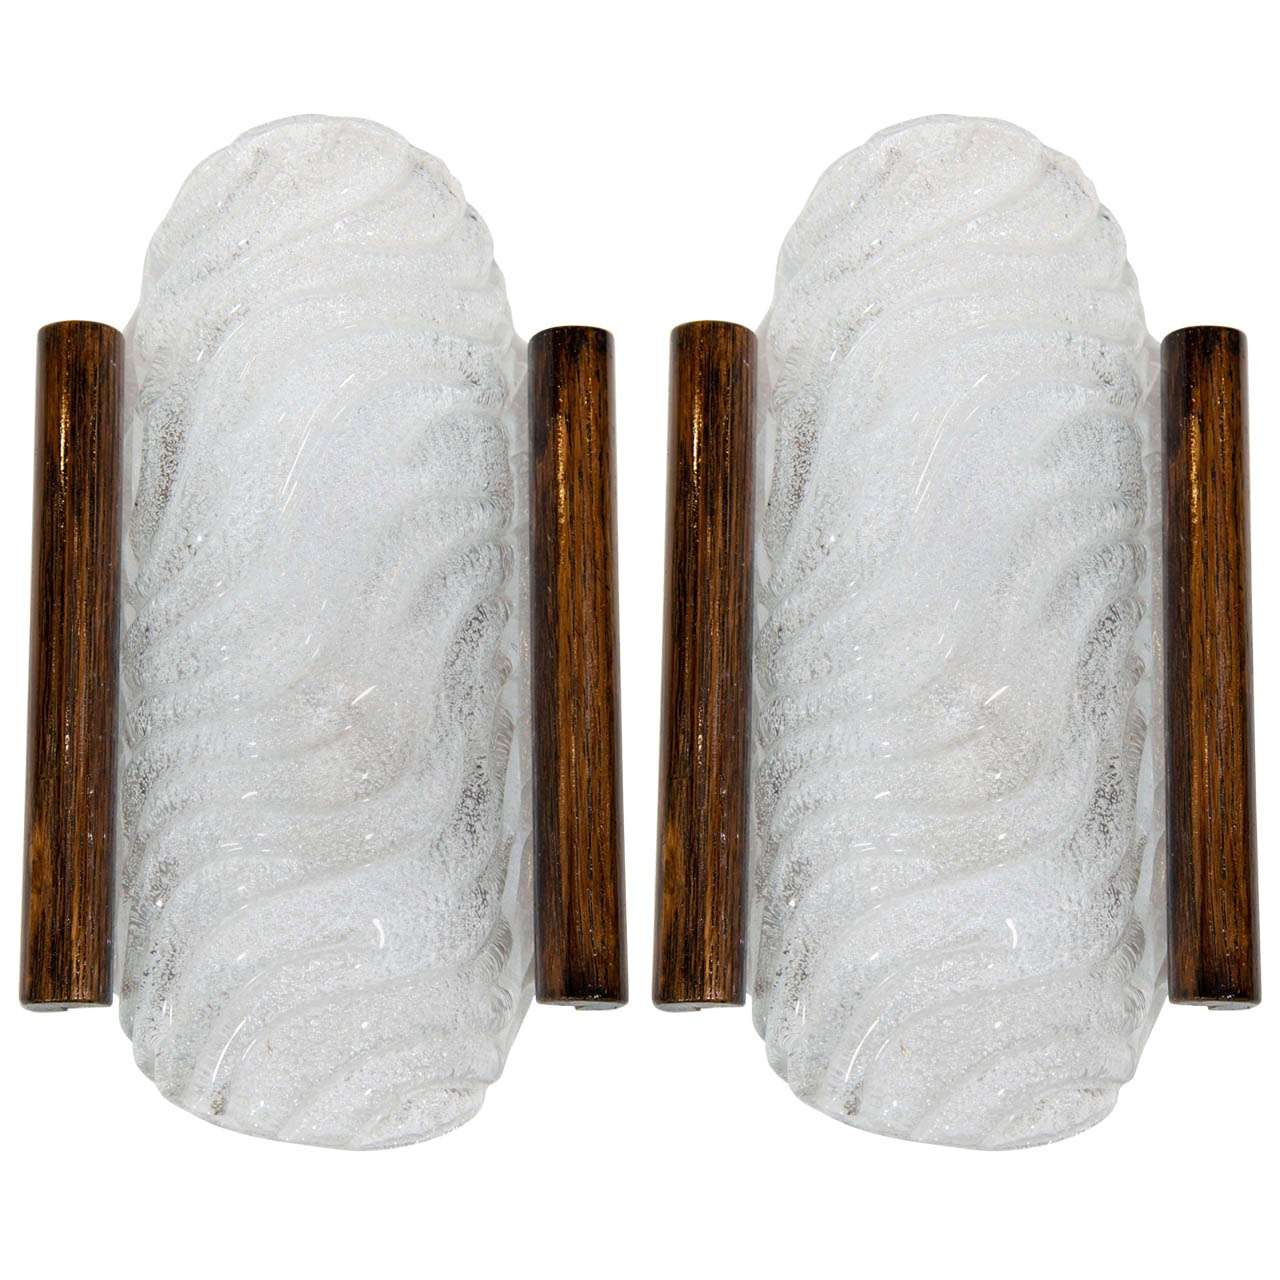 Barovier and Toso Murano Glass Sconces with Wood Detail, 1950s